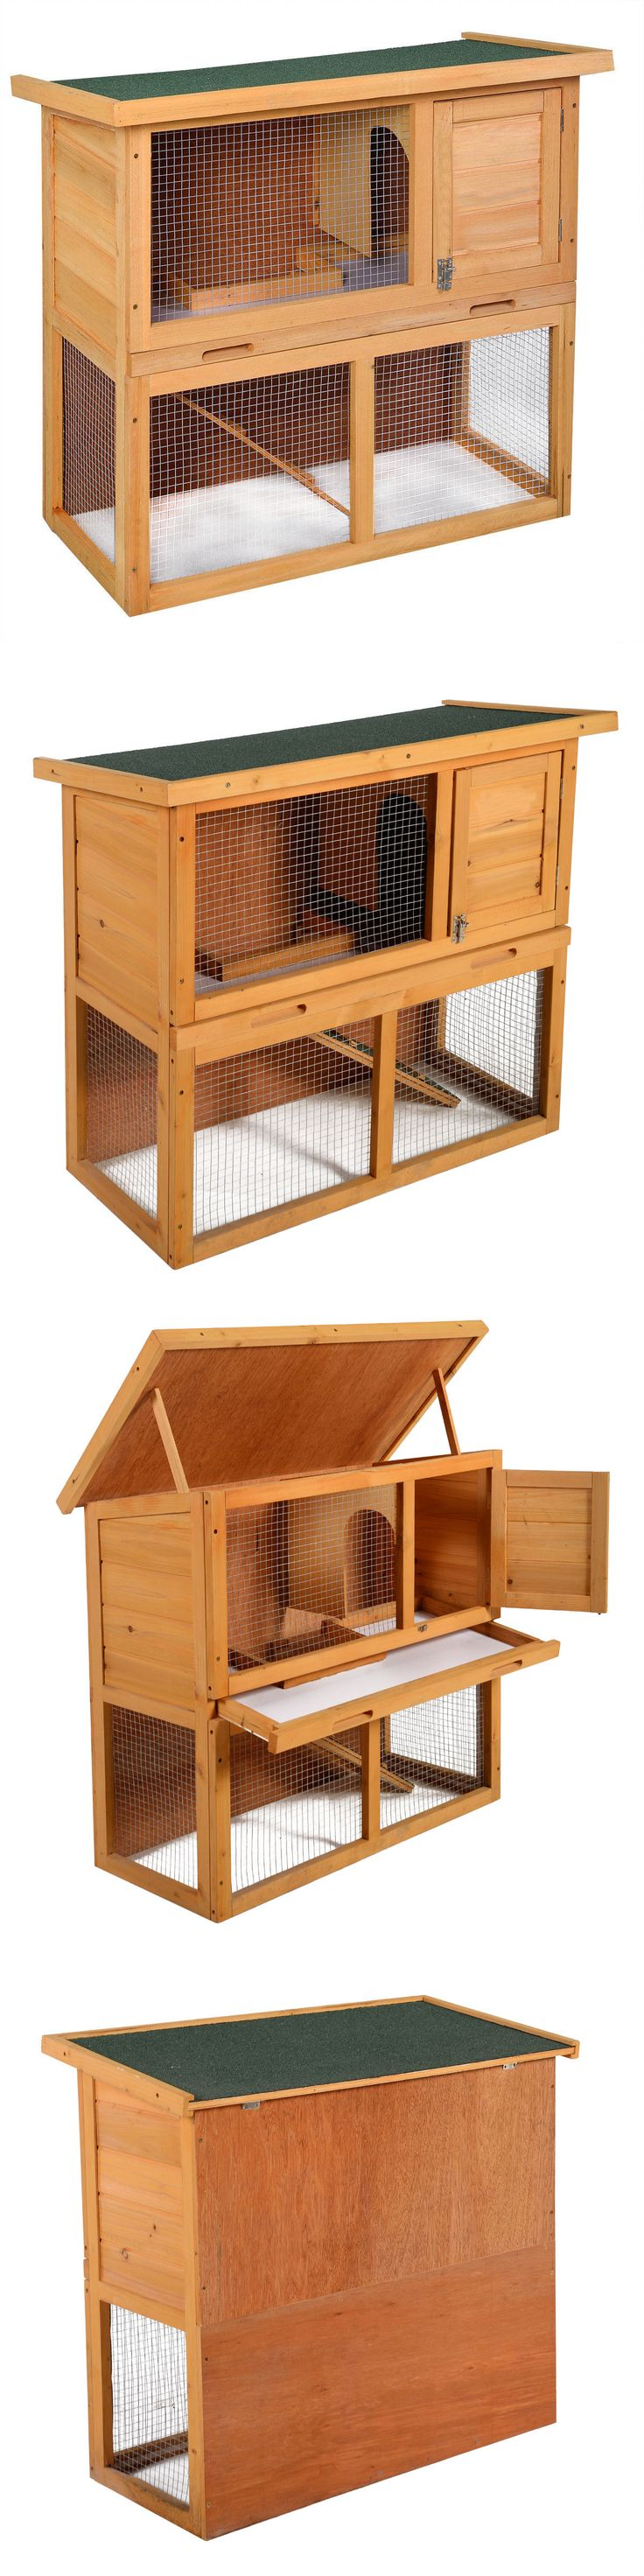 Backyard Poultry Supplies 177801: 35 Wooden Chicken Coop Hen House Rabbit Wood Hutch Poultry Cage Waterproof BUY IT NOW ONLY: $61.9